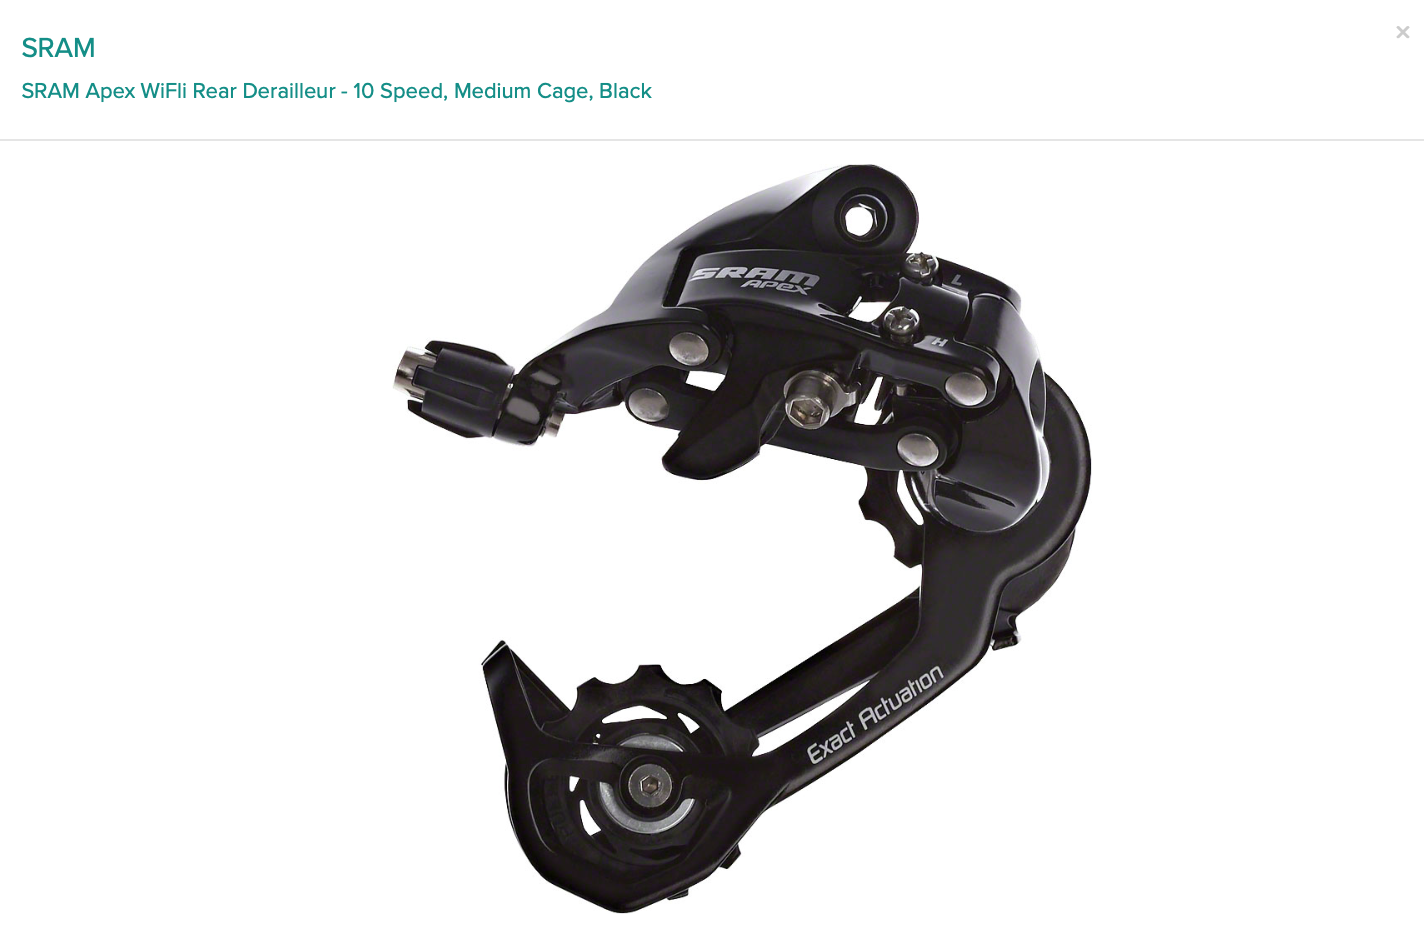 SRAM SRAM Apex WiFli Rear Derailleur - 10 Speed, Medium Cage, Black